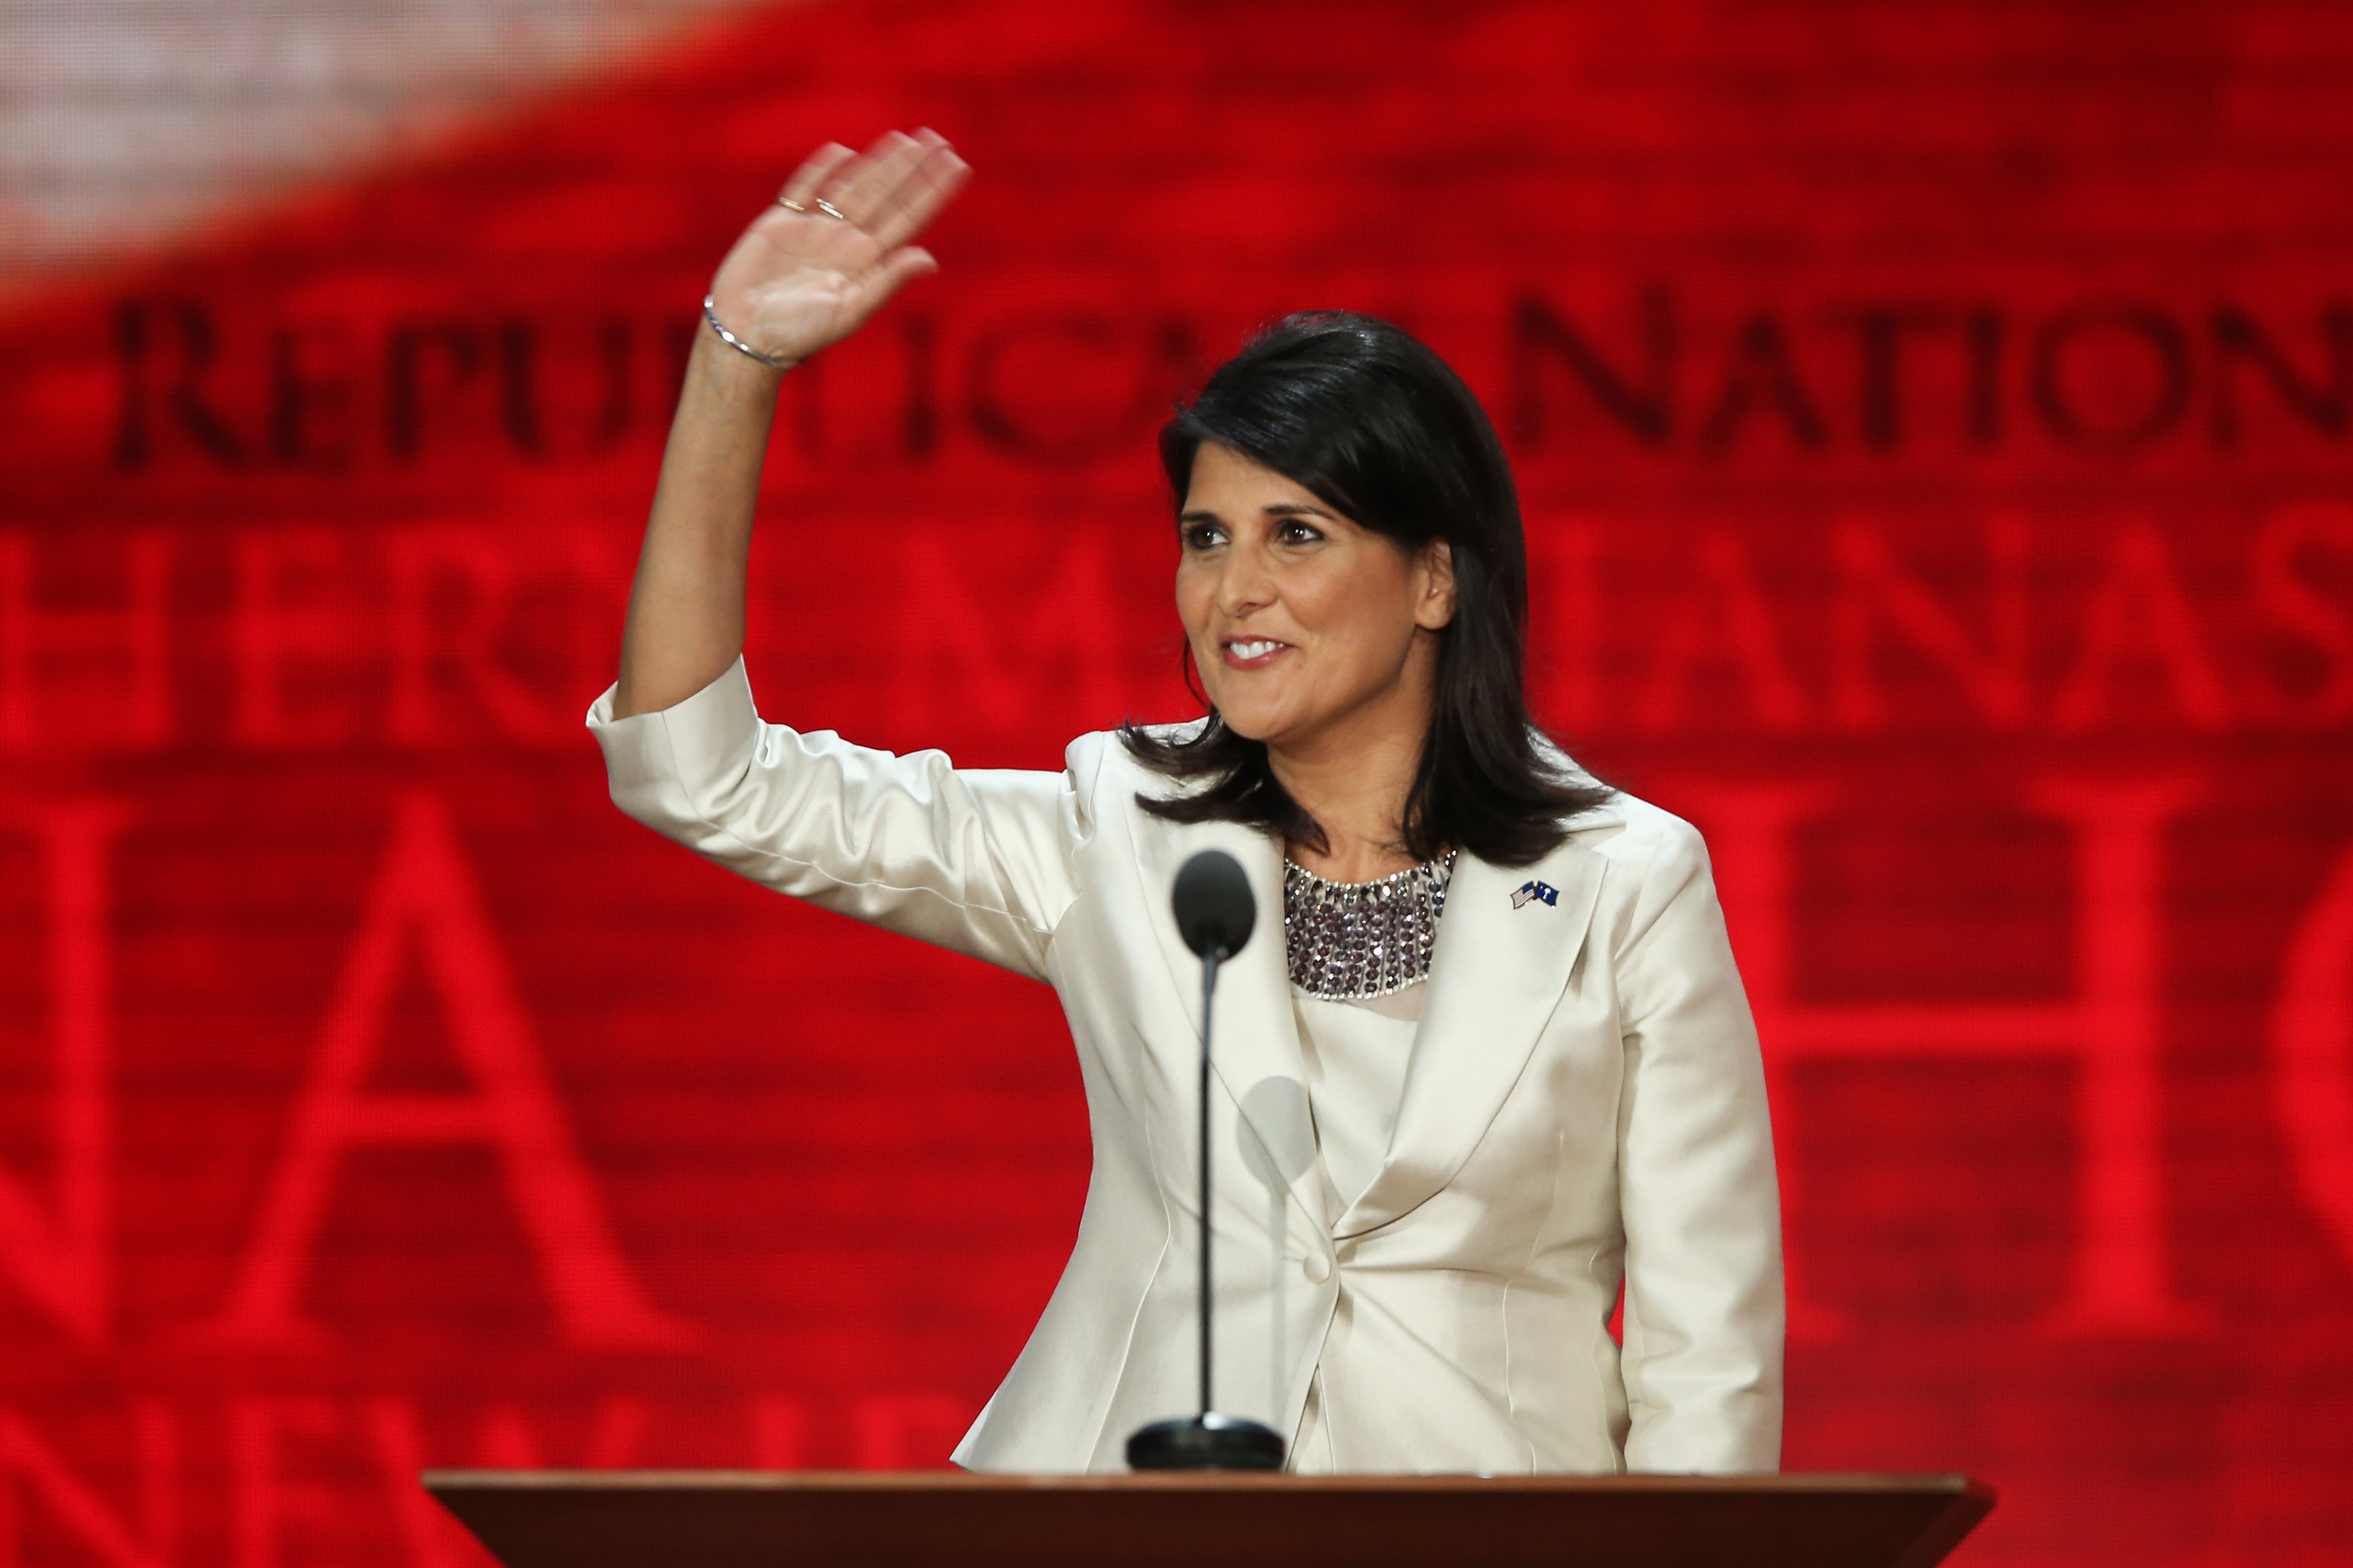 South Carolina Gov. Nikki Haley received one of the biggest cheers of the night after saying that if you need to show an identification card to get on an airplane, you should also need to show an ID to vote.